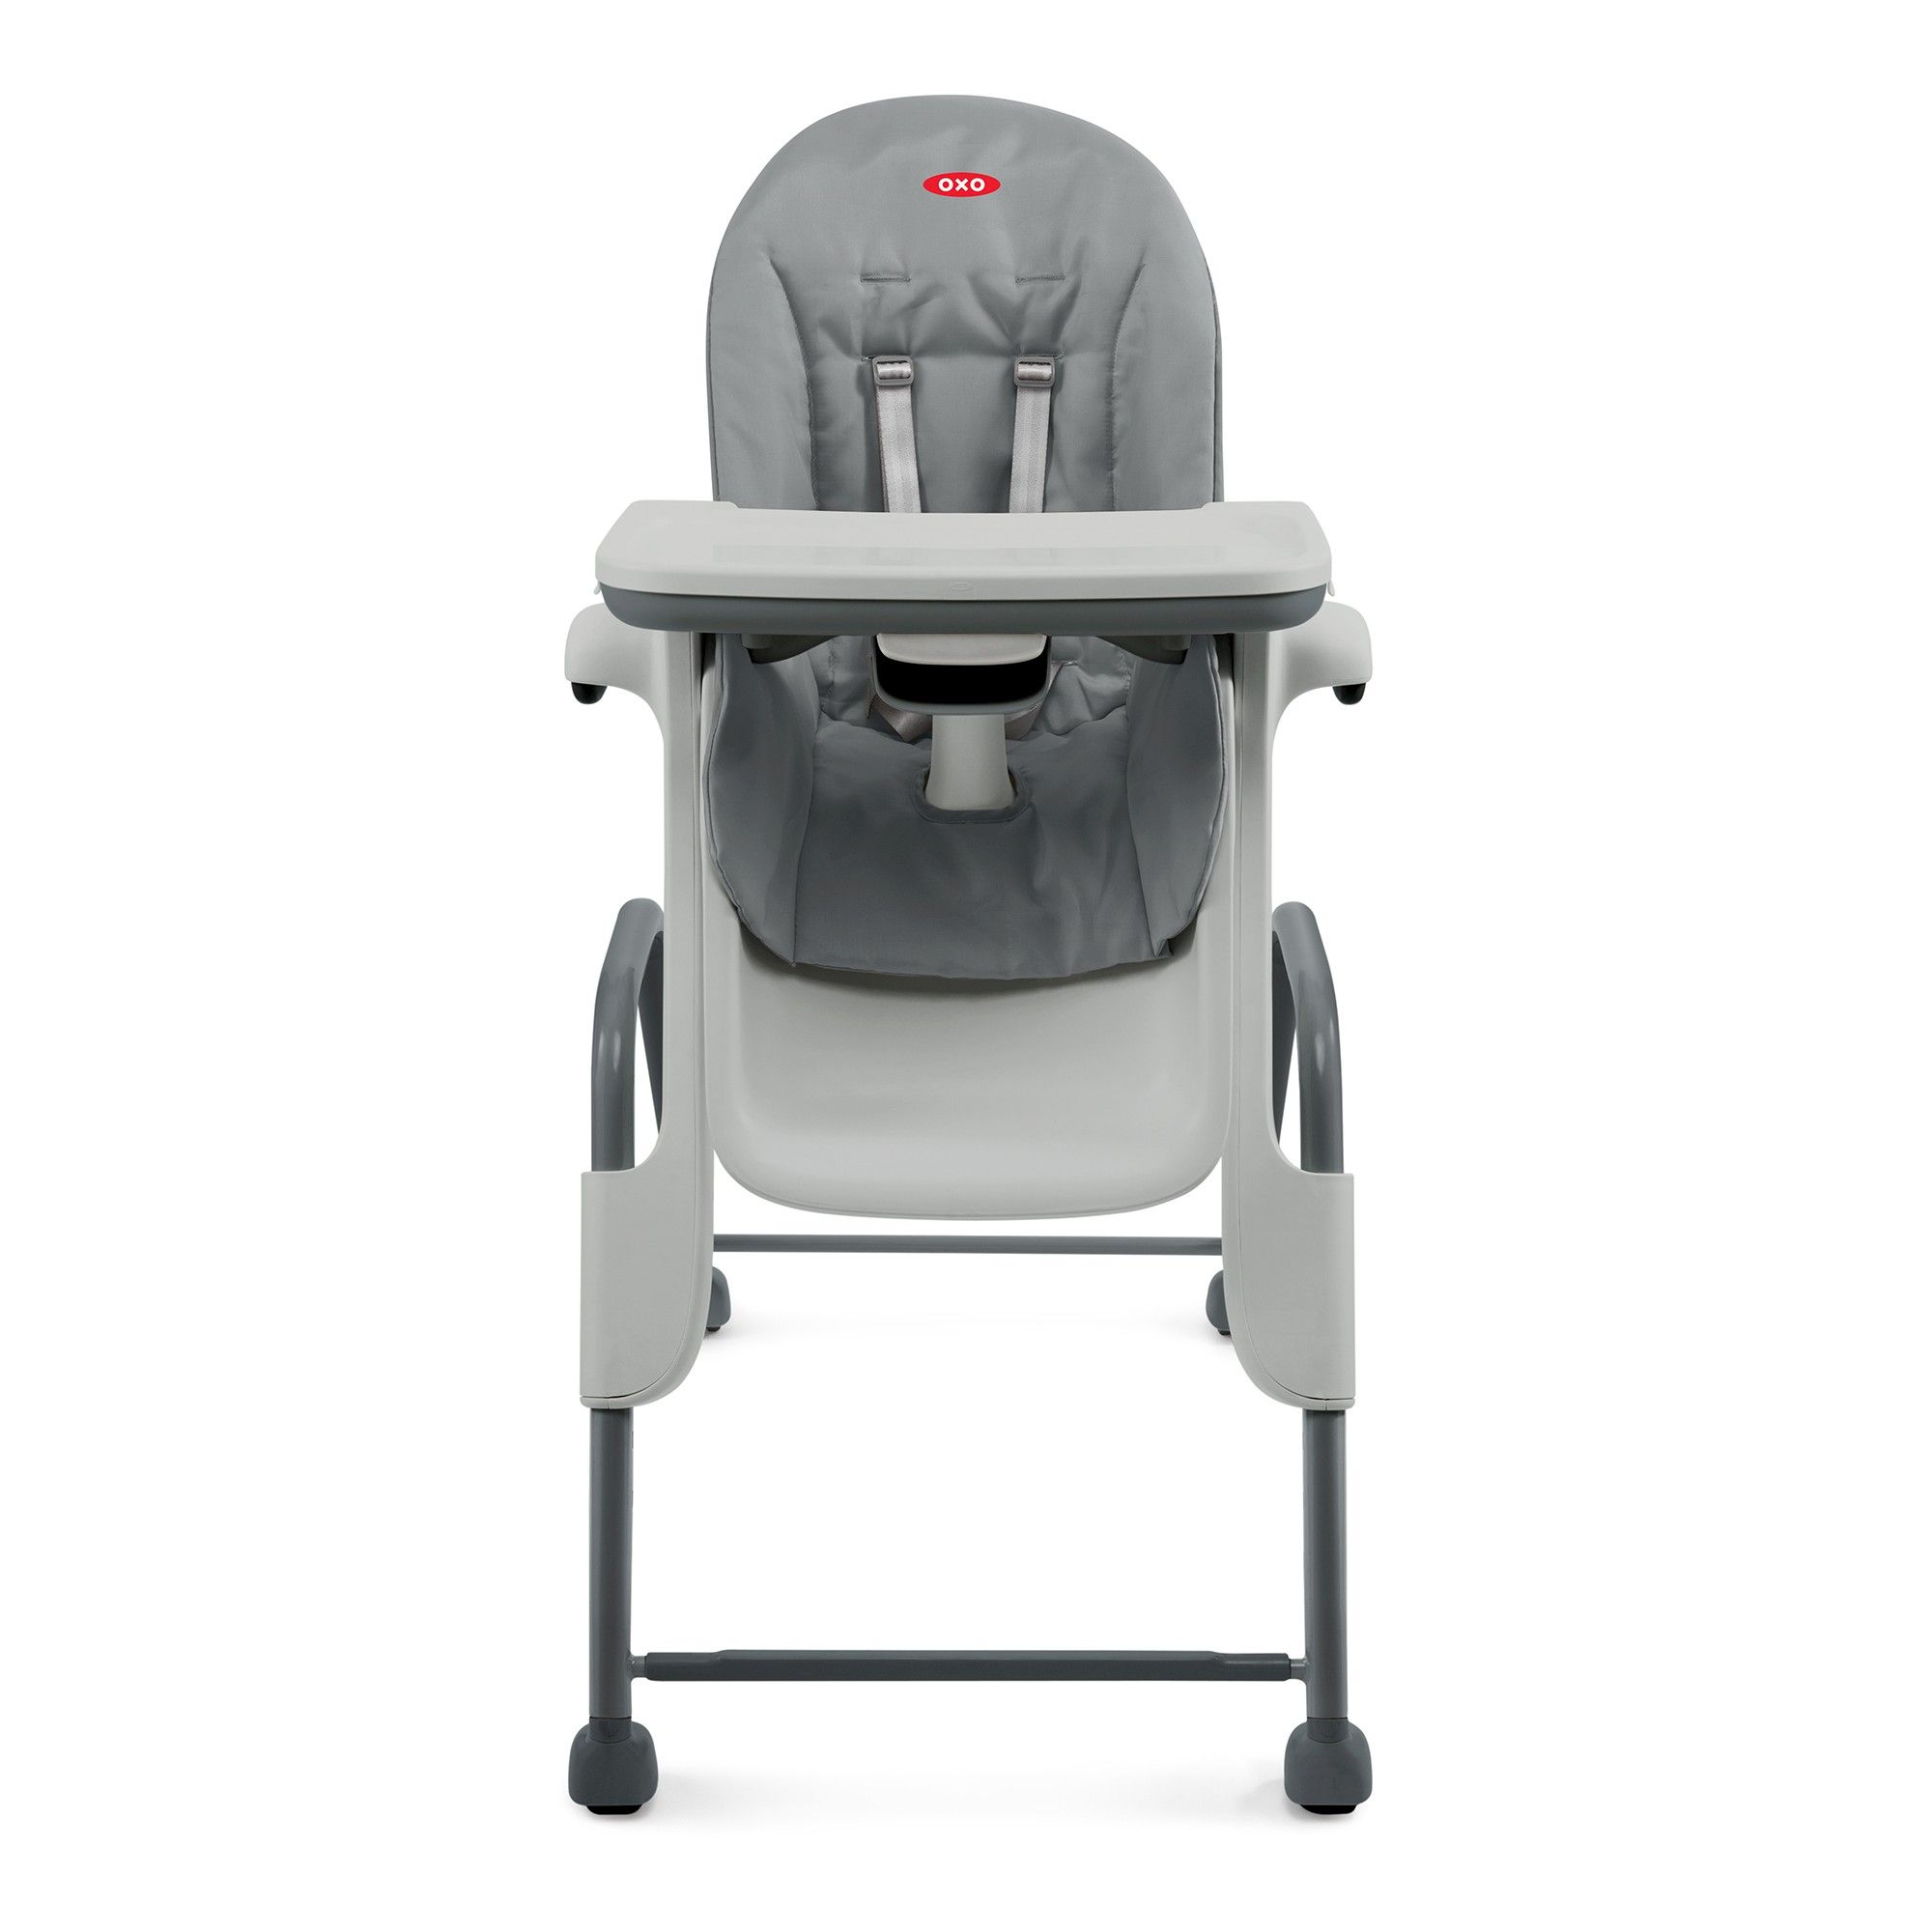 Graco high chair 4 in 1 oxo standard high chair graphite grey  high chairs graphite and